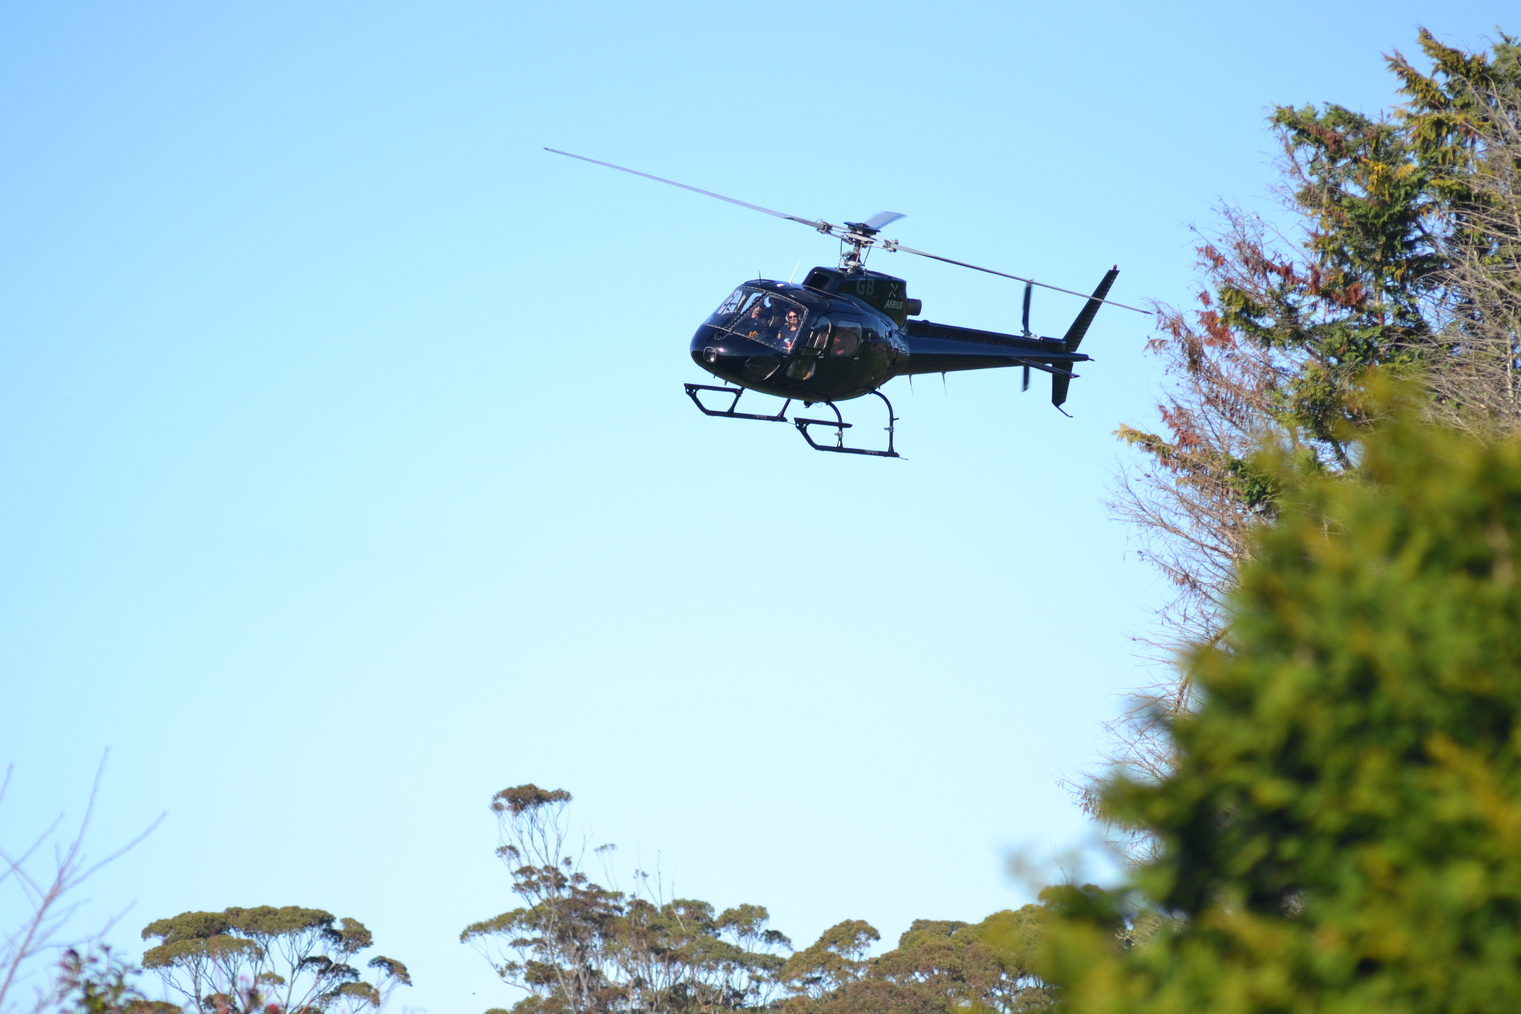 Helicopter arriving with guests for a wine tasting and picnic